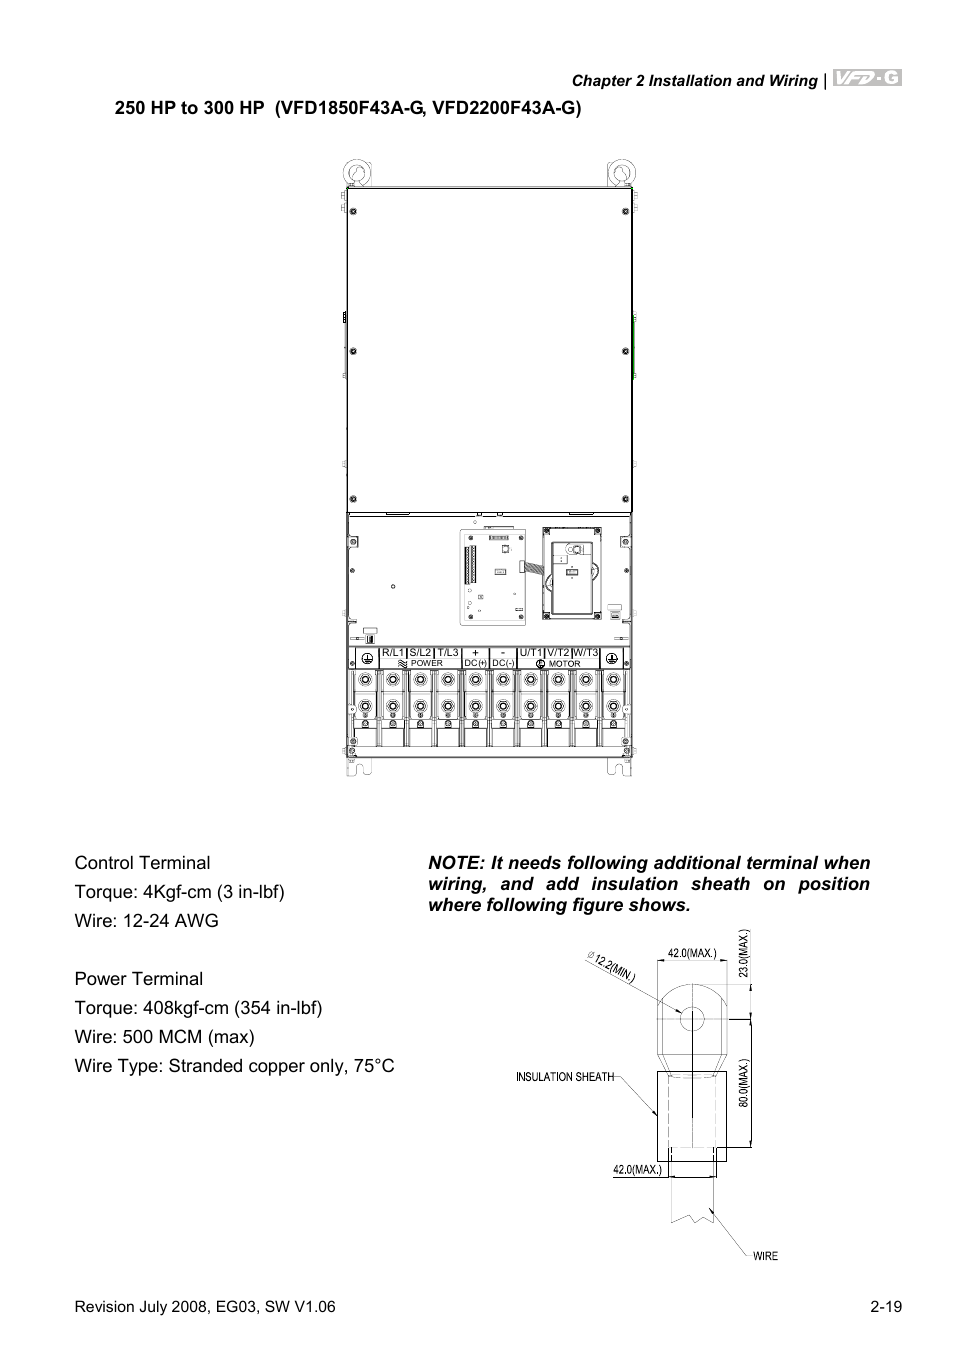 Delta Electronics AC Motor Drive VFD-G User Manual | Page 42 / 183